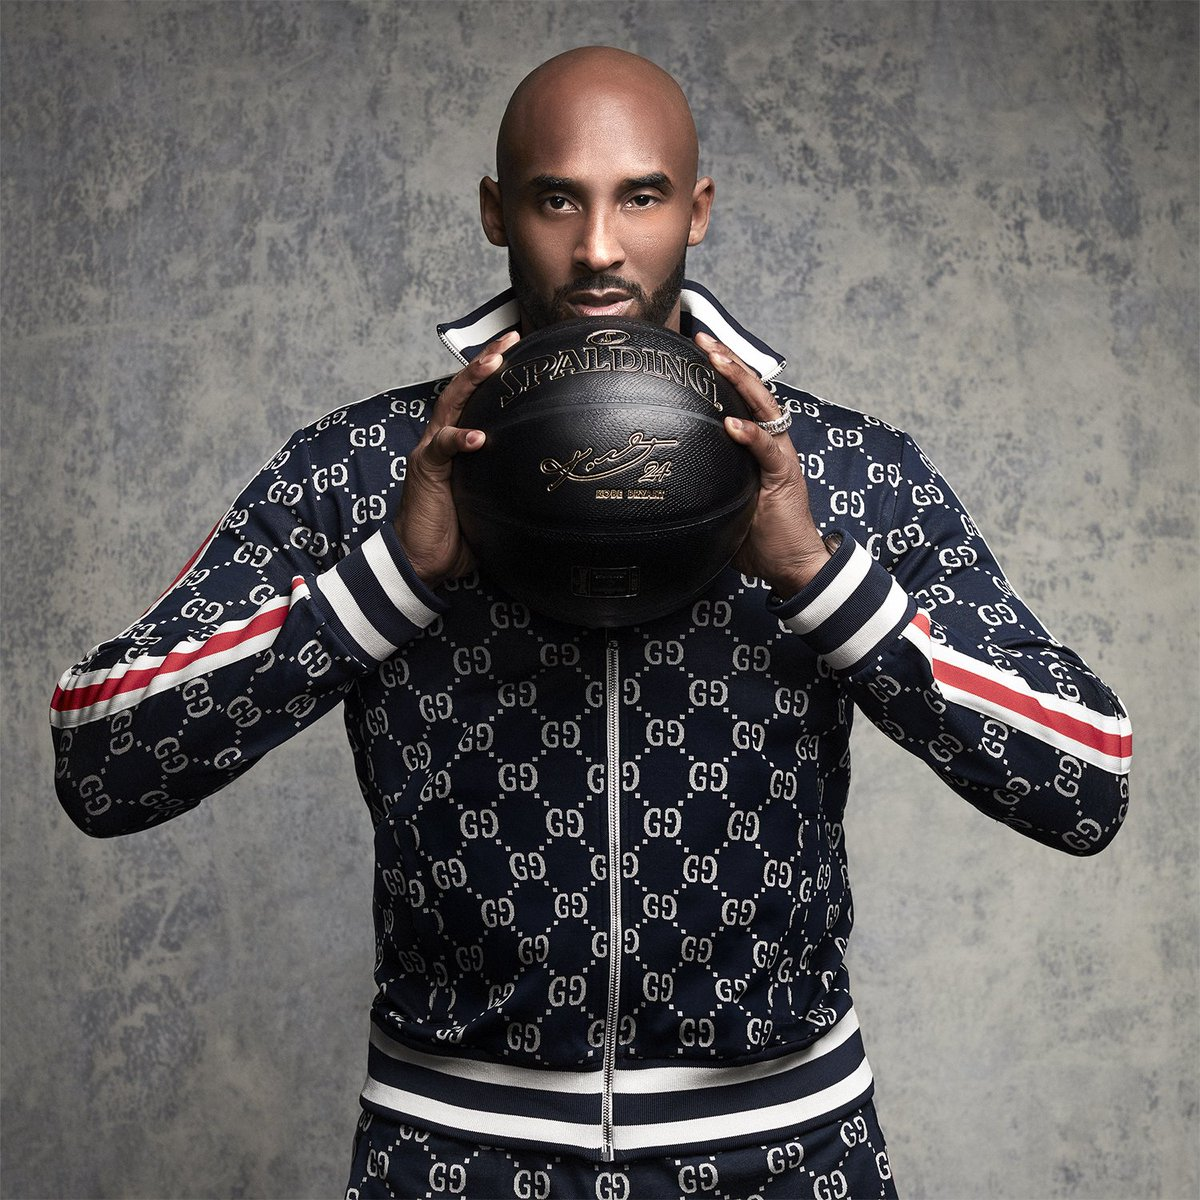 Kobe Bryant On Twitter Honored To Introduce The Newest